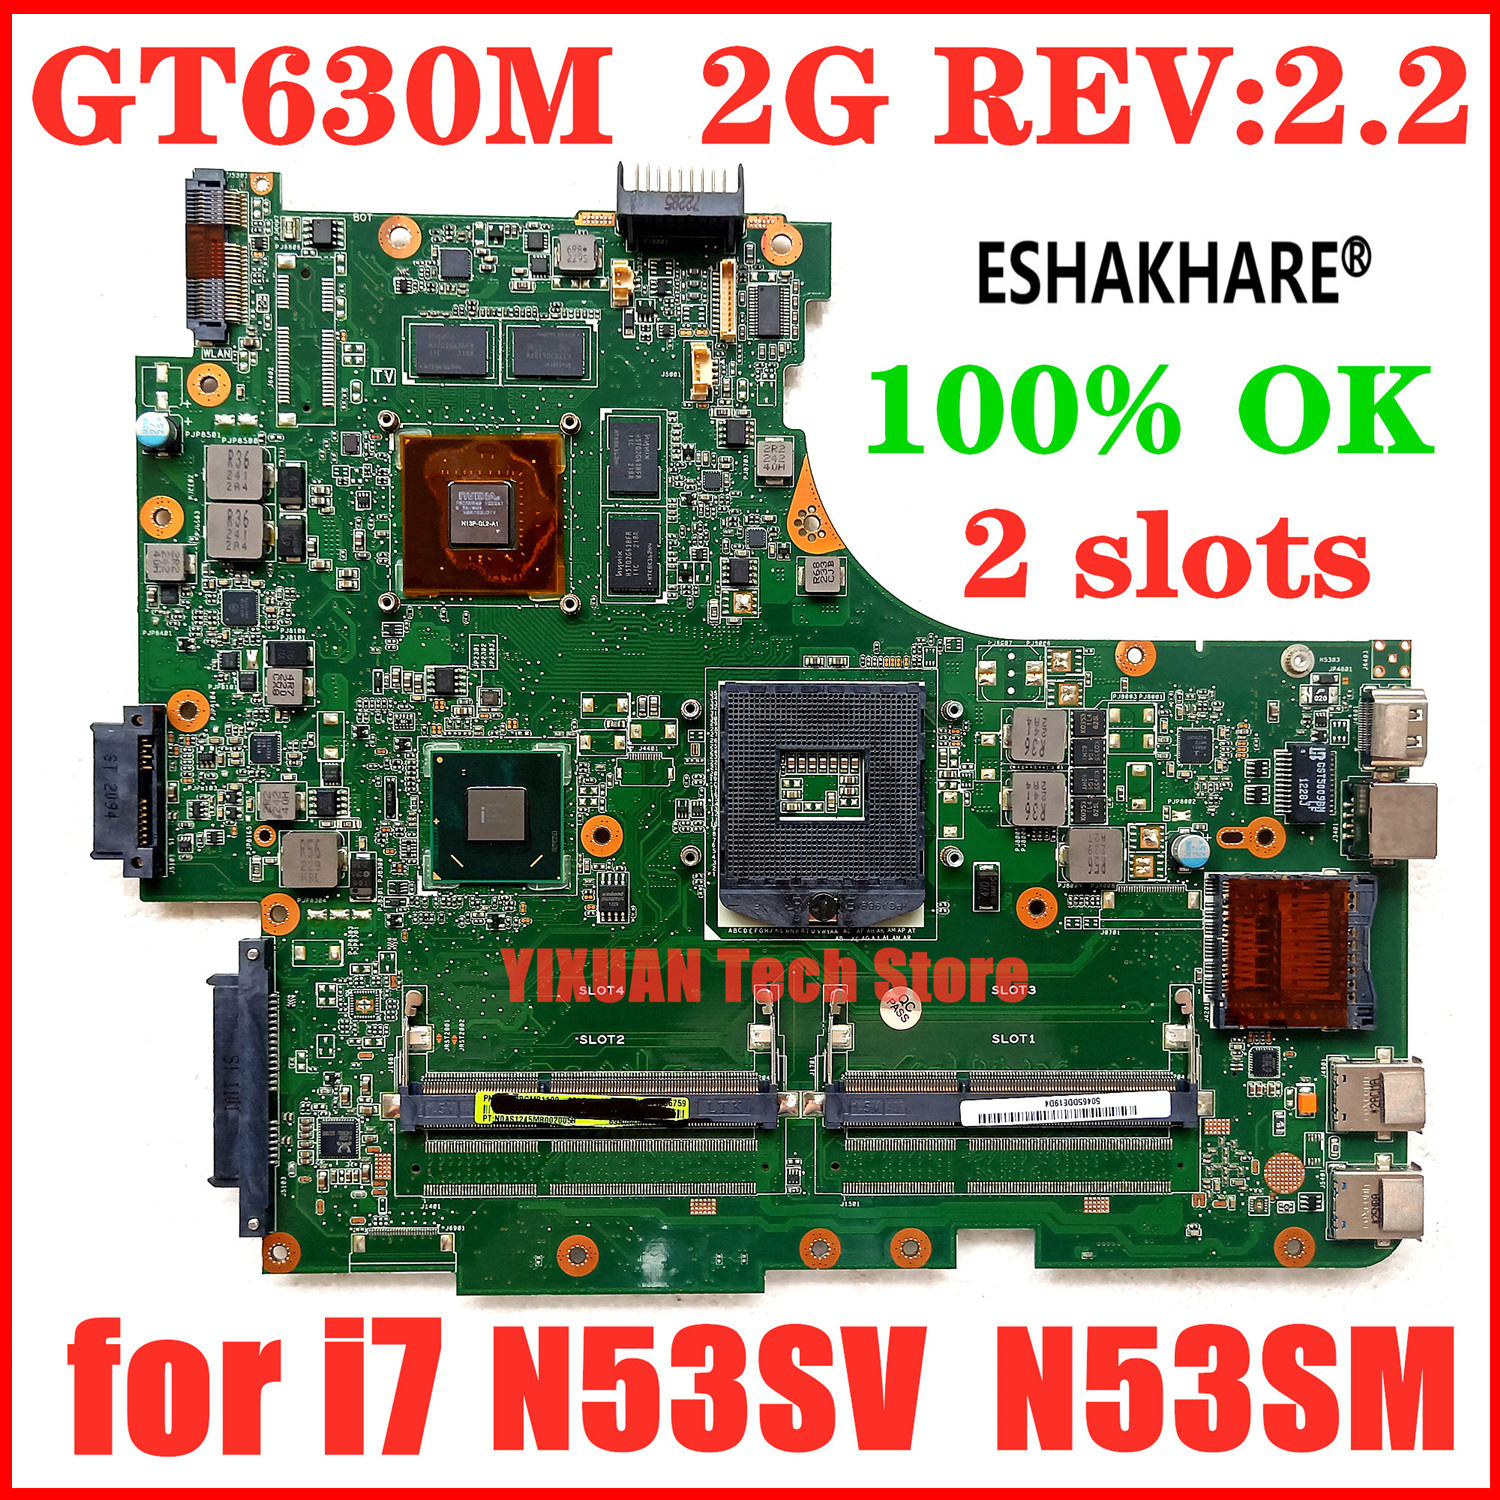 ESHAKHARE N53SM Motherboard 2*Slots GT630M 2G For ASUS N53S N53SV N53SN N53SM laptop Motherboard N53SM Mainboard Test work 100%(China)